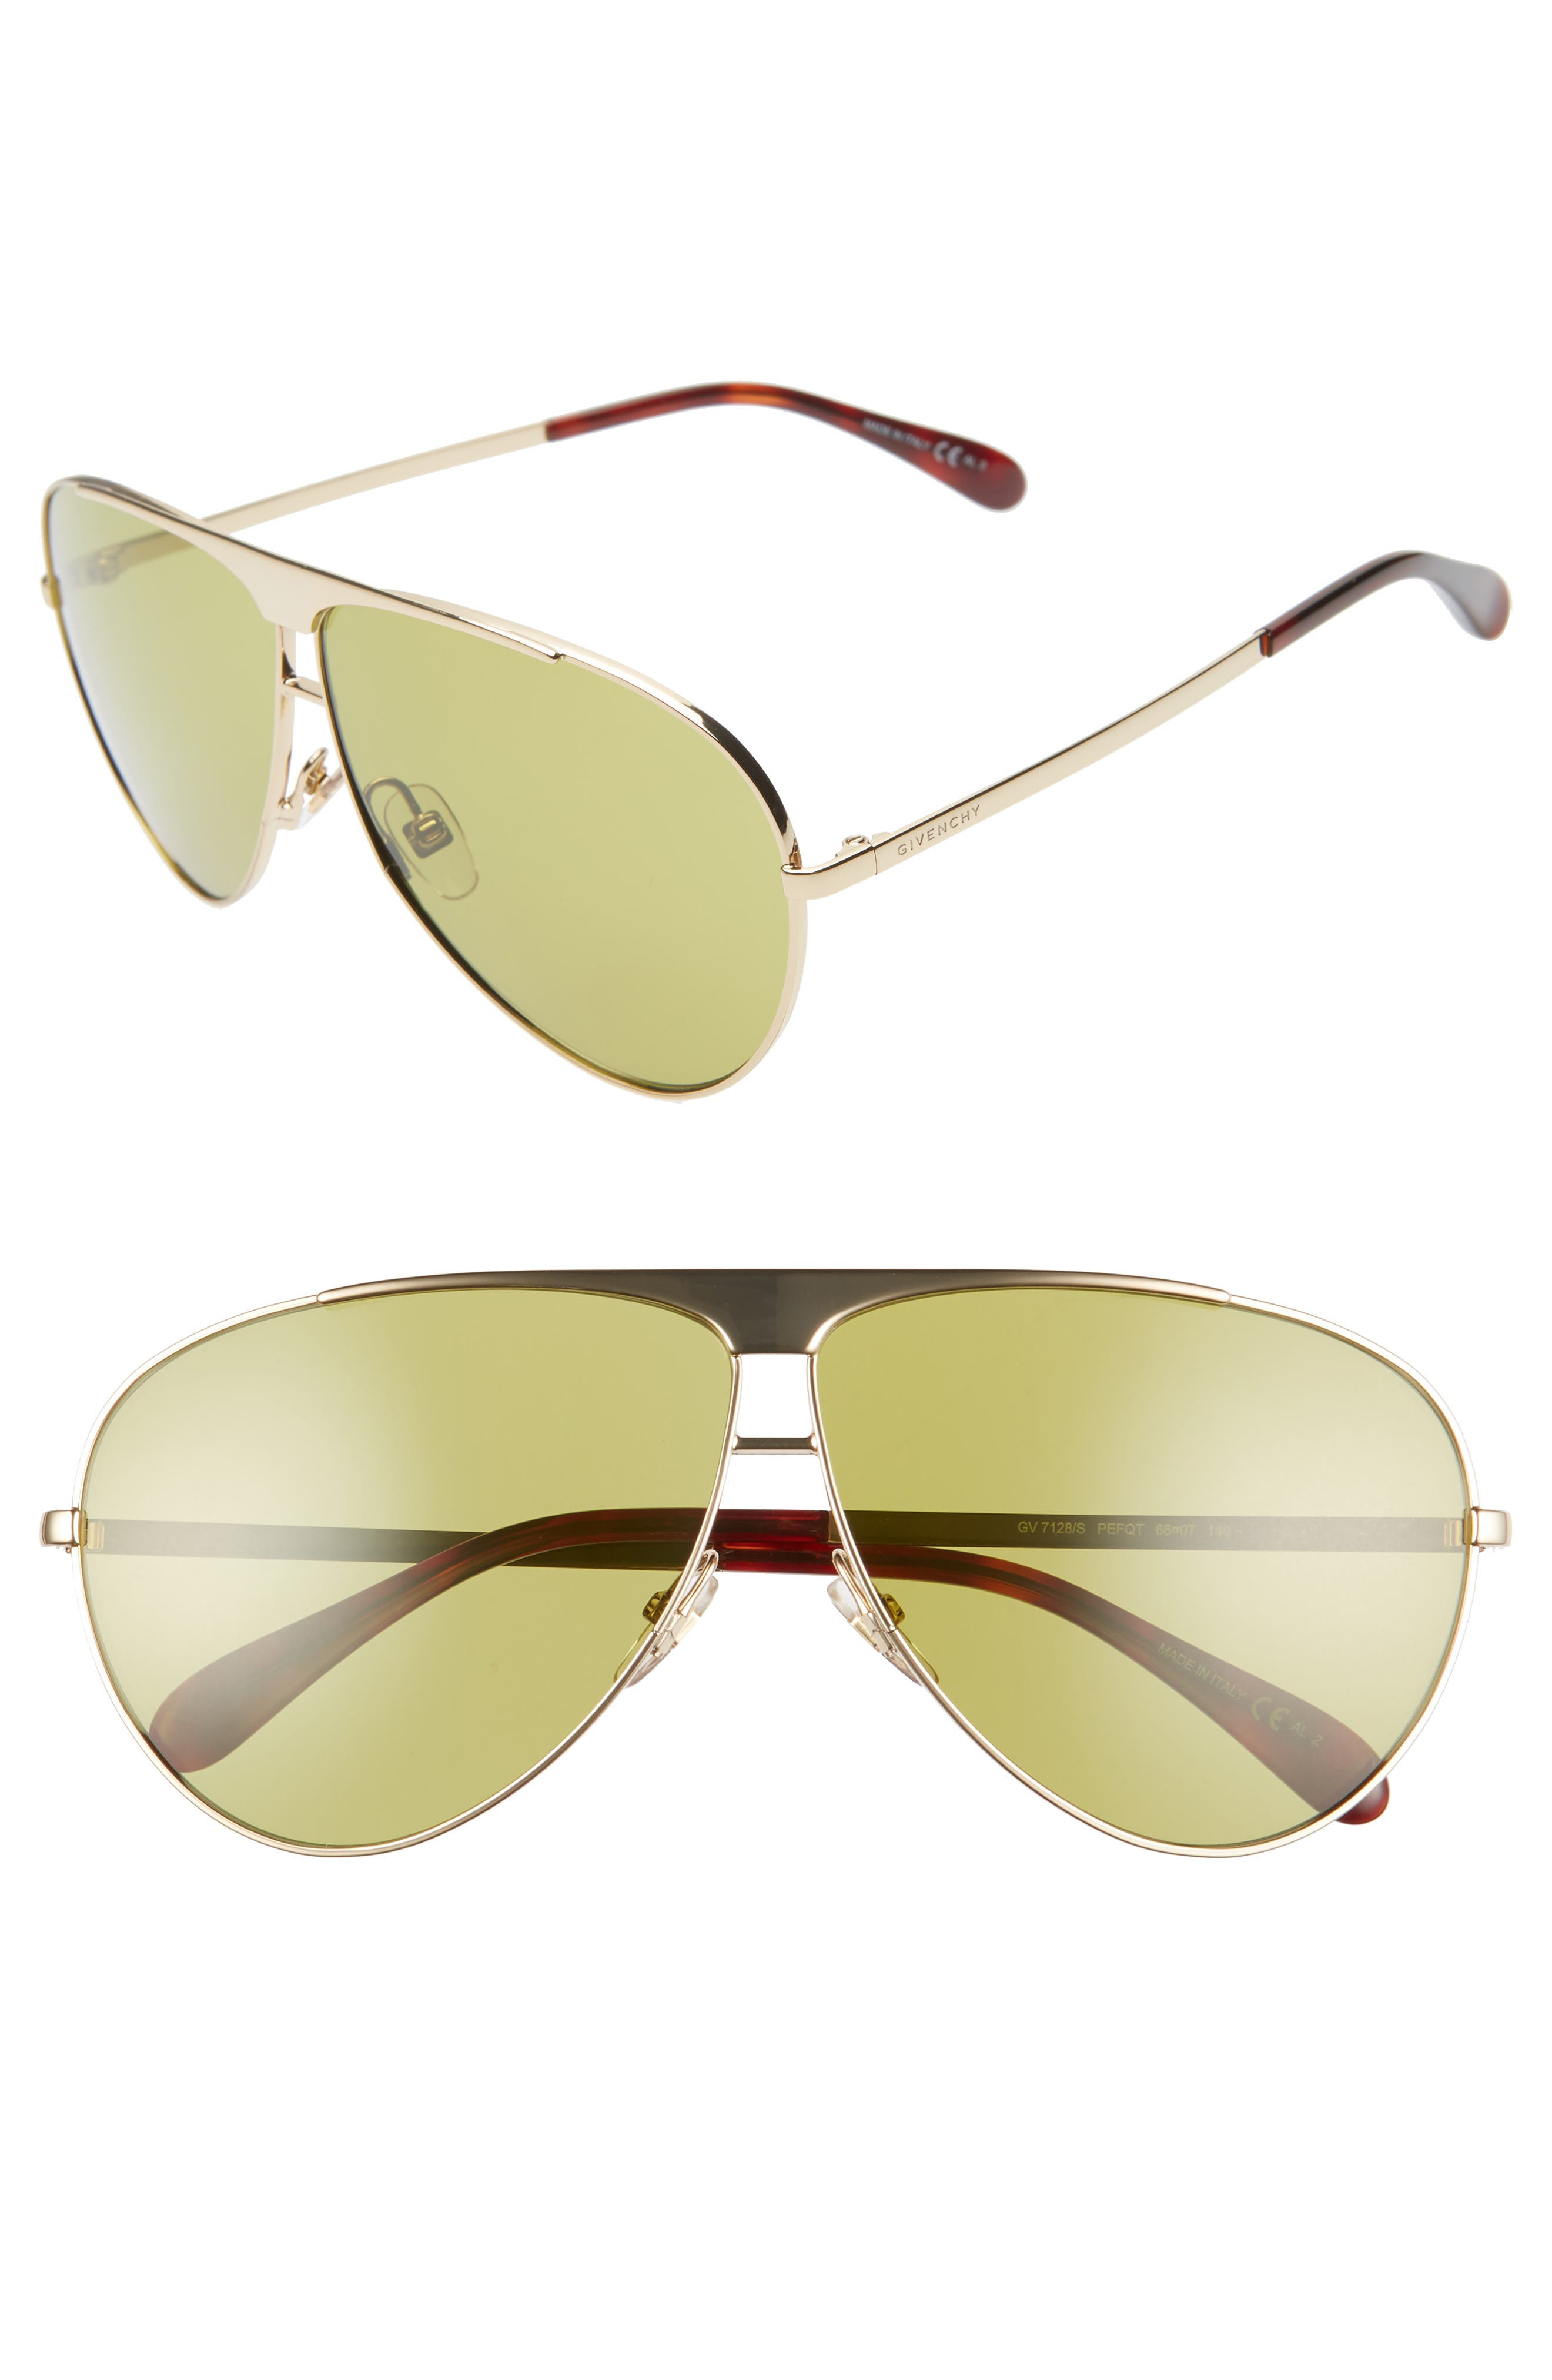 Givenchy 6m Aviator Sunglasses - Gold/ Green